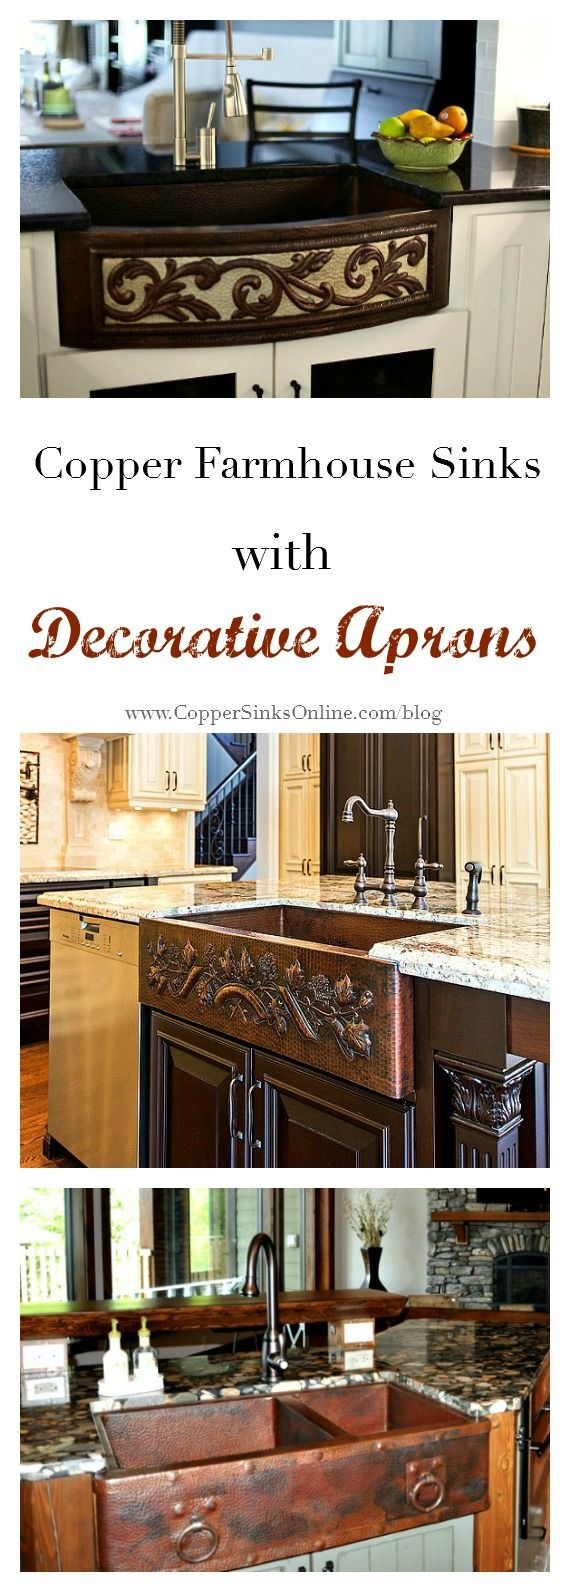 Beautiful apron front design ideas for copper kitchen farmhouse sinks